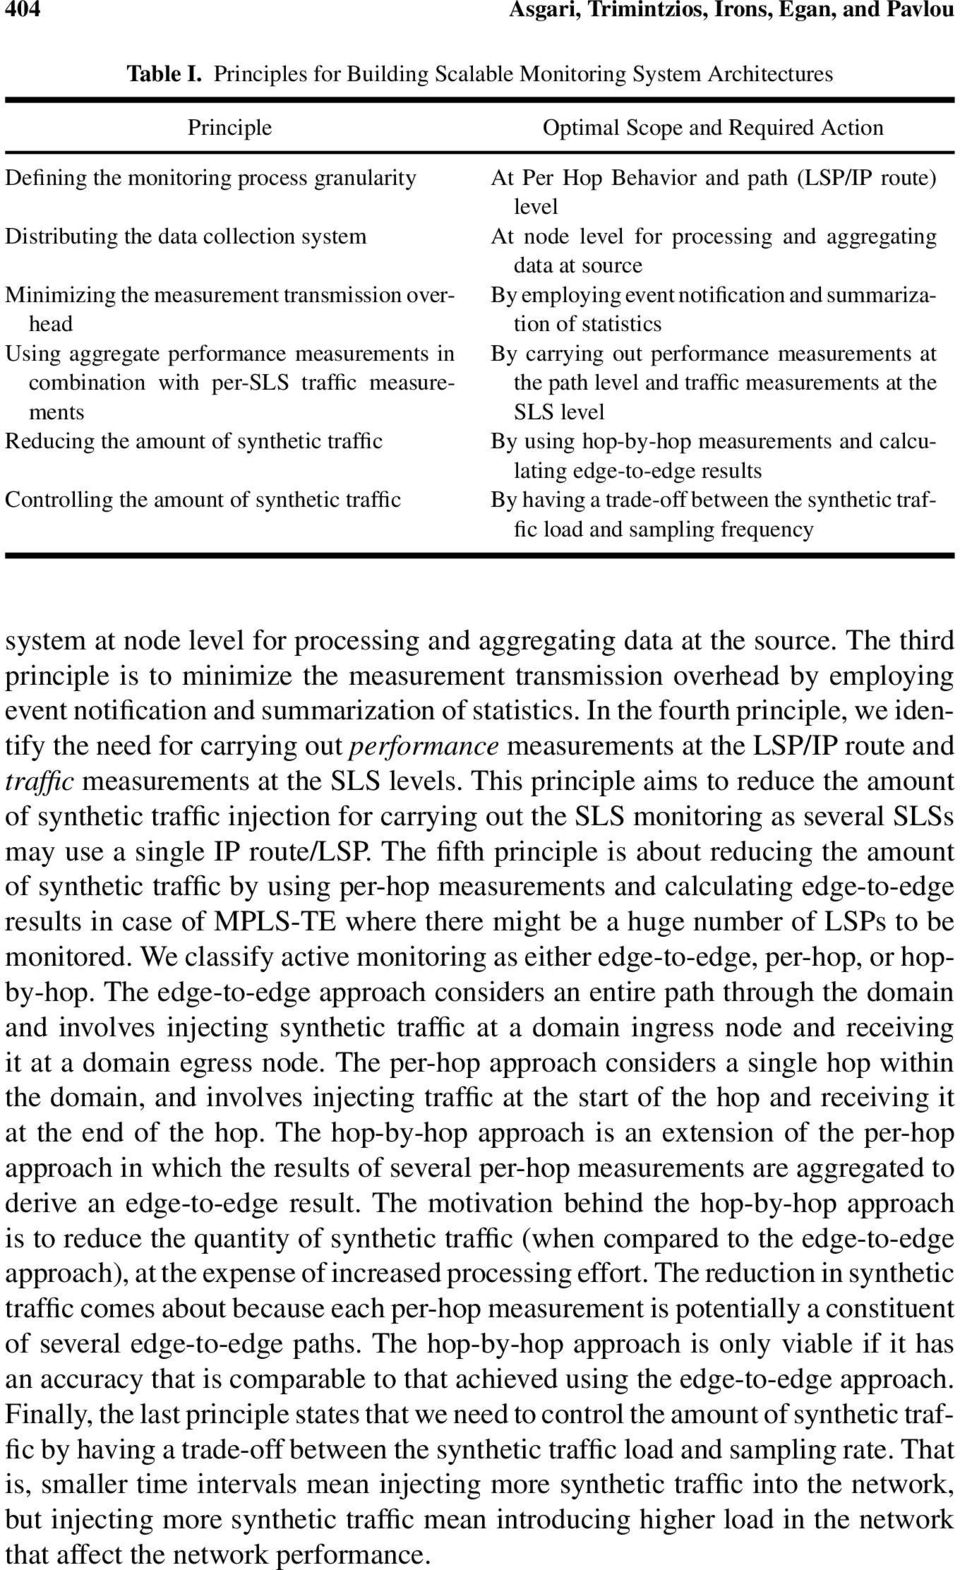 overhead Using aggregate performance measurements in combination with per-sls traffic measurements Reducing the amount of synthetic traffic Controlling the amount of synthetic traffic Optimal Scope